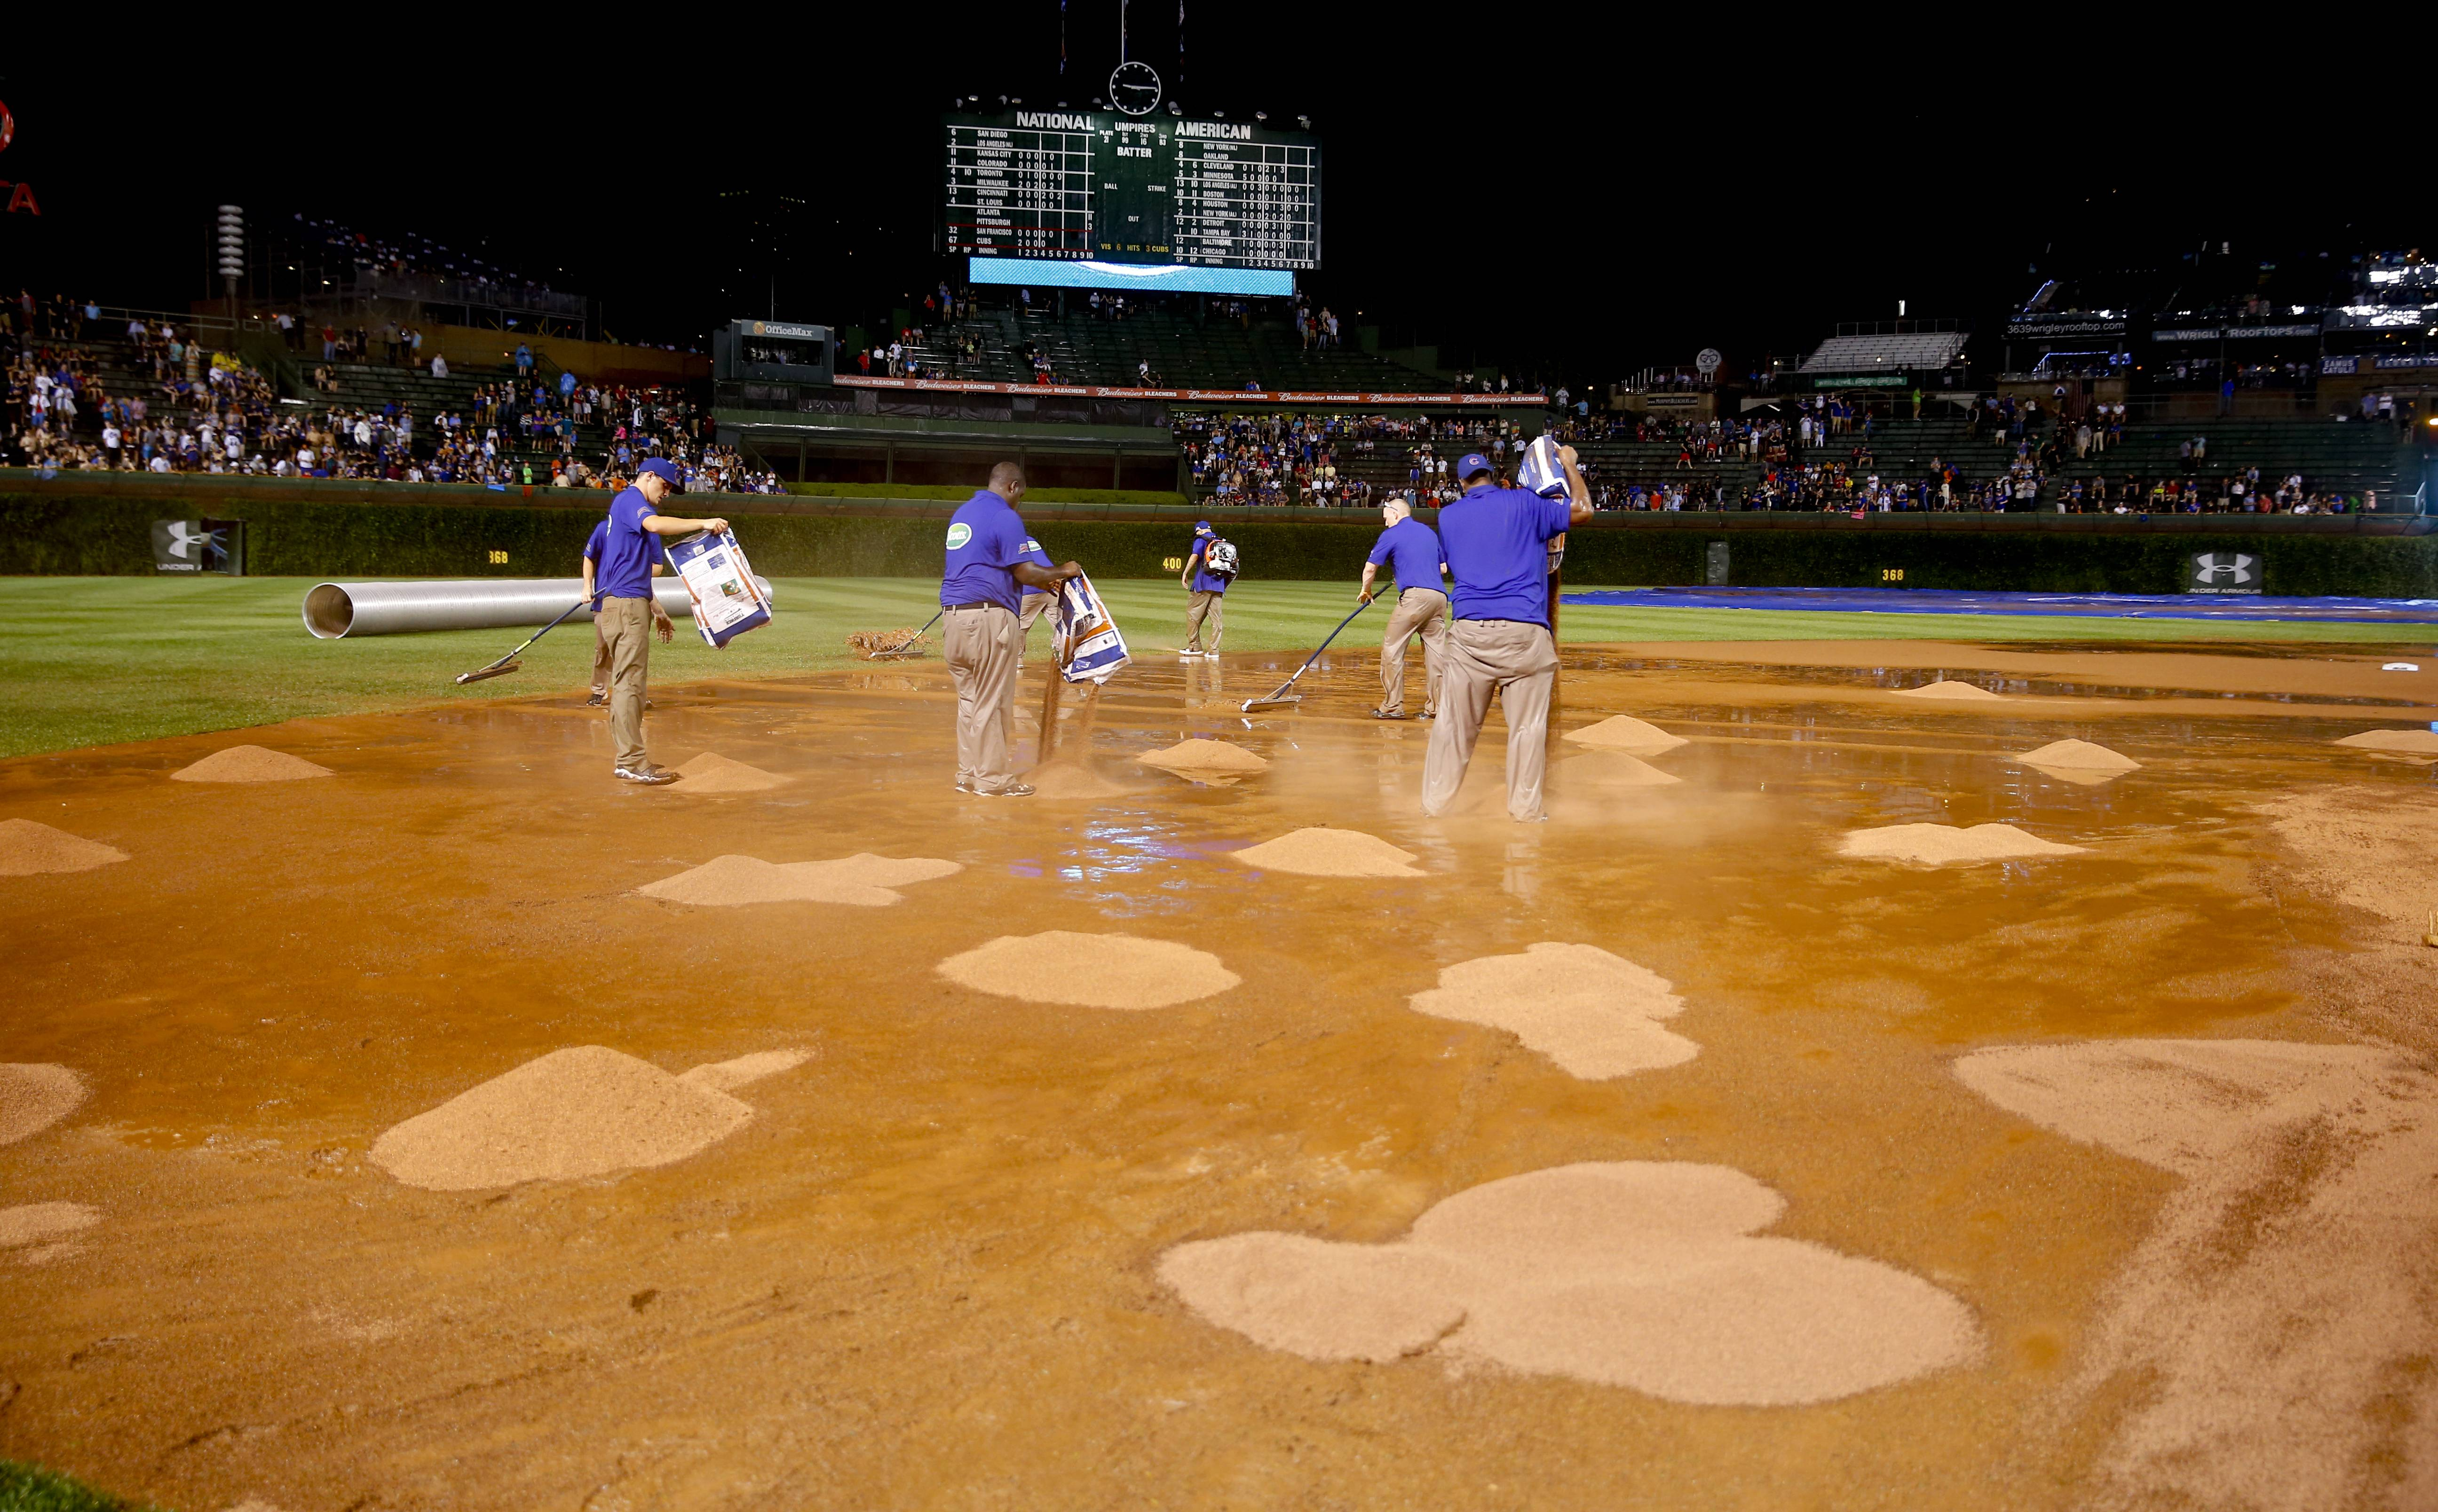 The grounds crew works on the field after a heavy rain soaked Wrigley Field during the fifth inning of a baseball game Tuesday between the San Francisco Giants and the Chicago Cubs in Chicago.